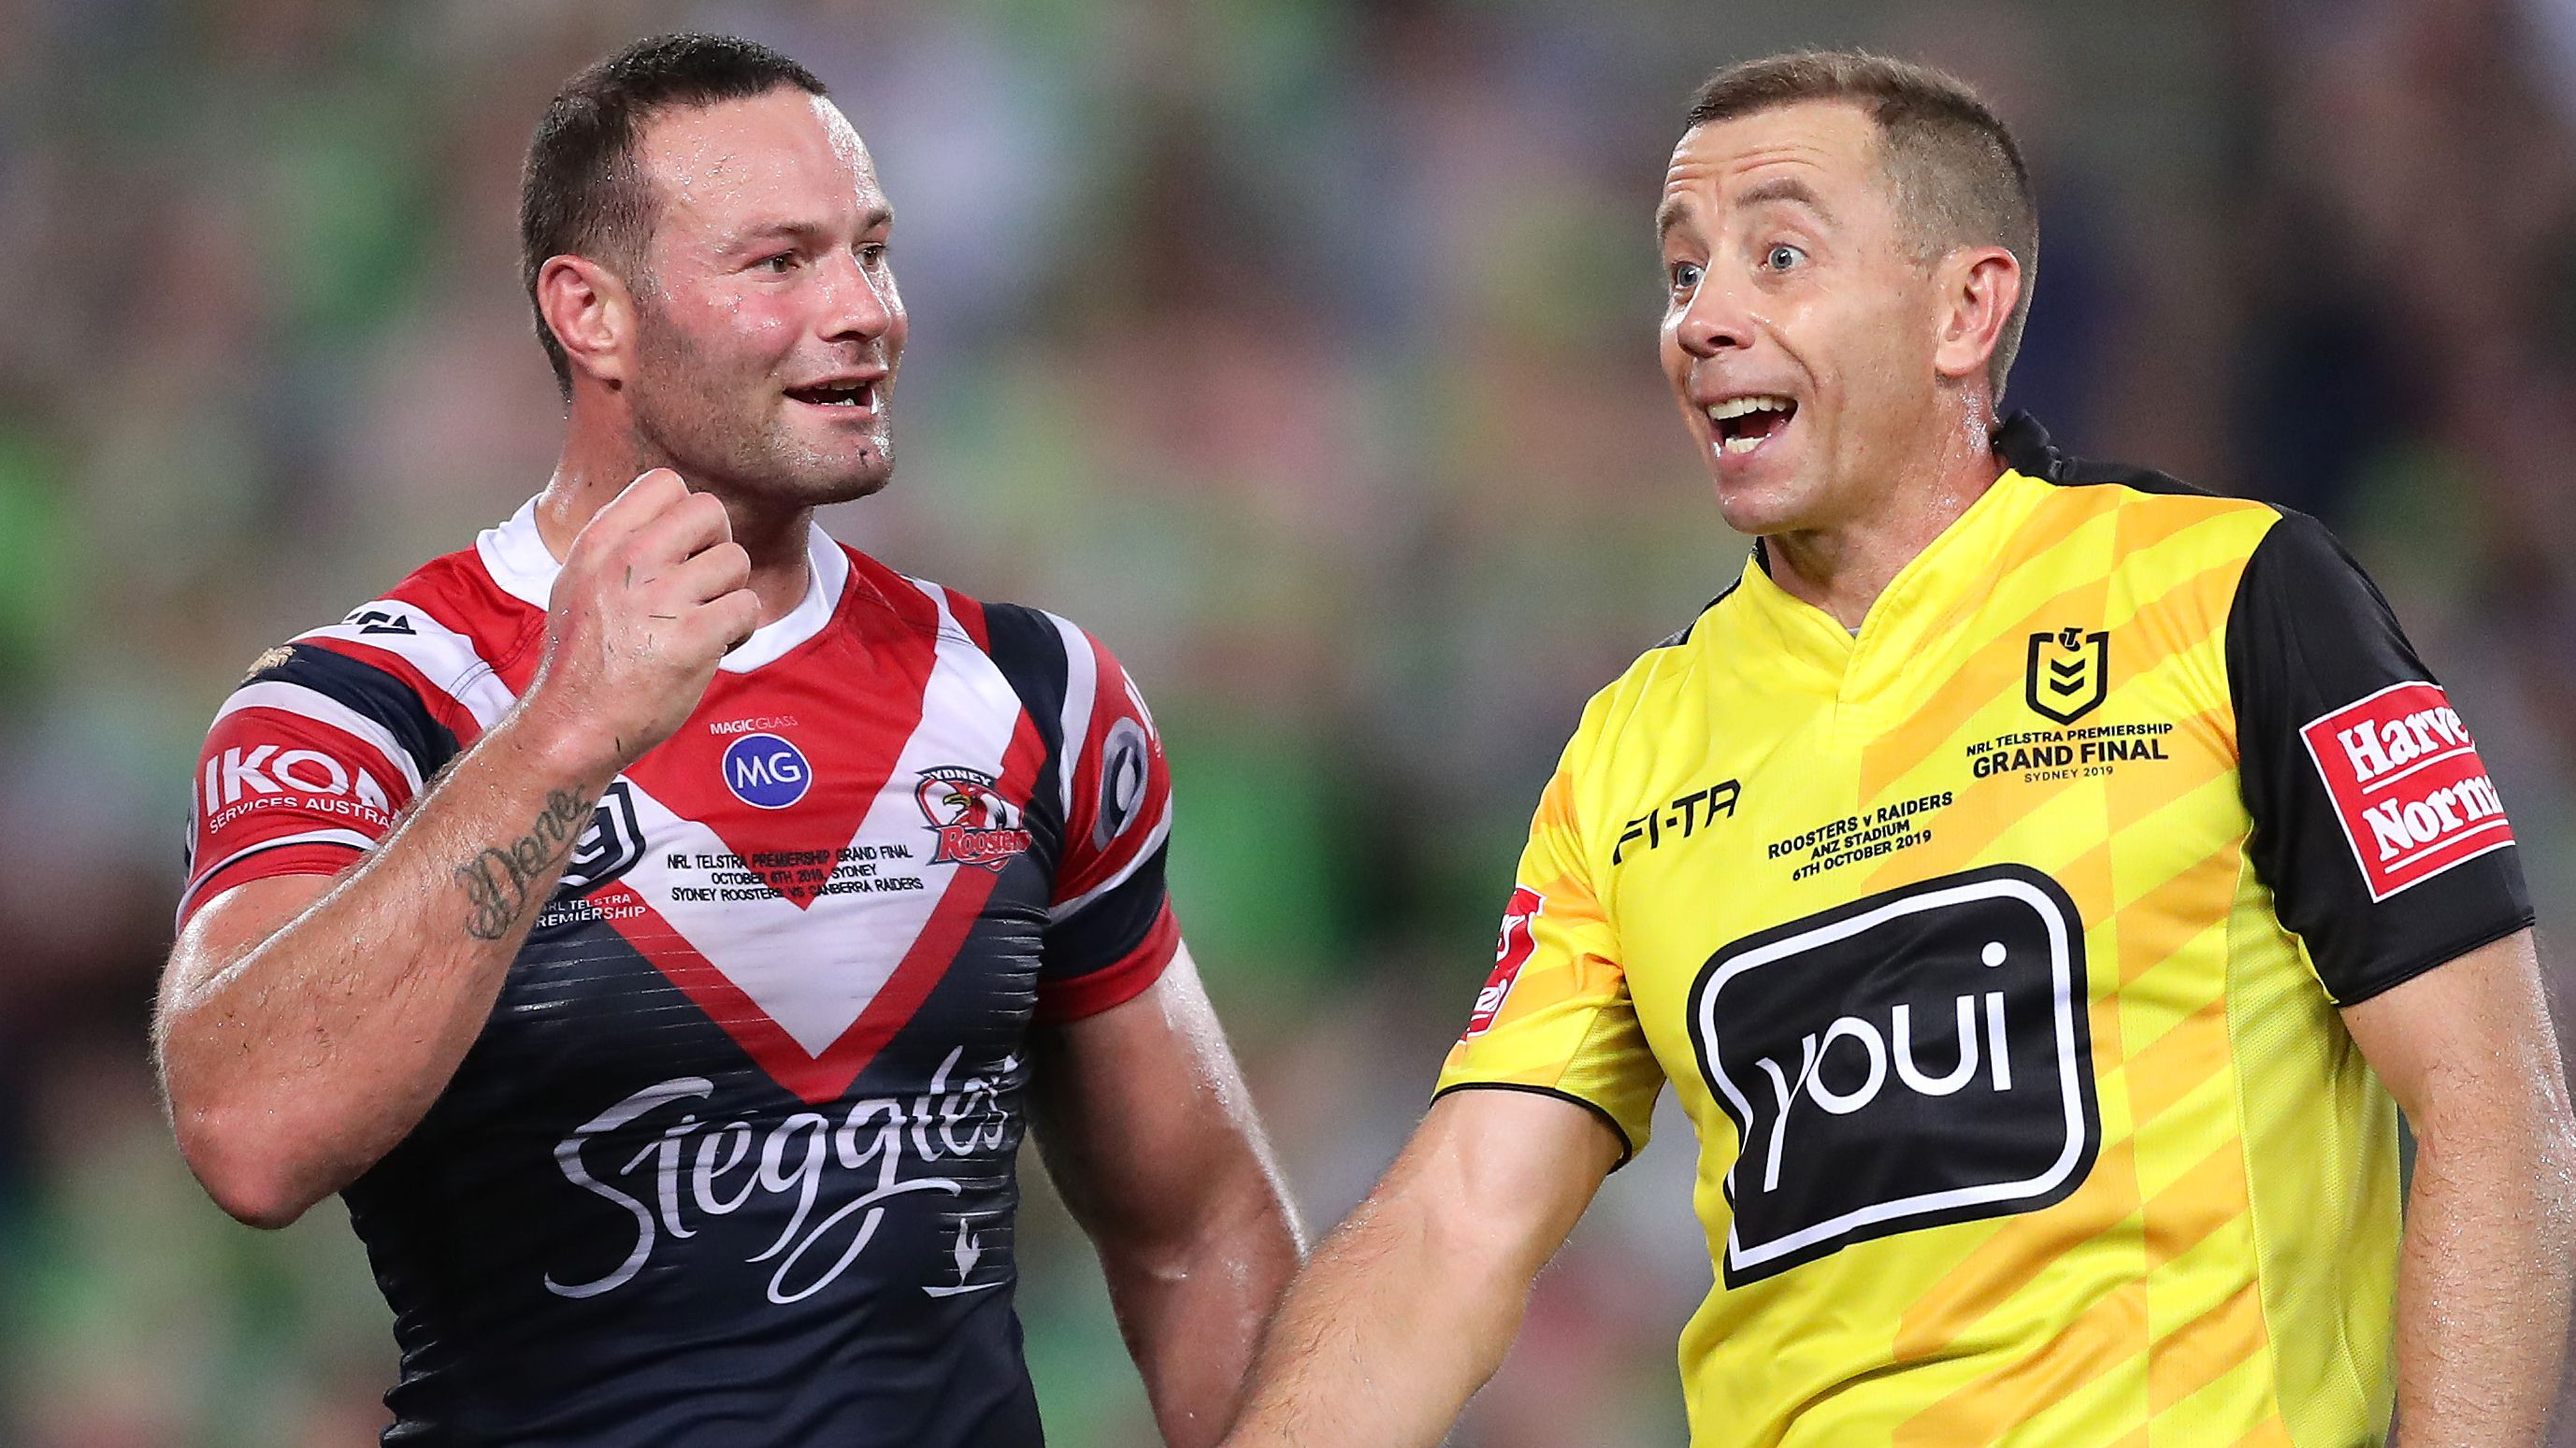 Boyd Cordner challenges referee Ben Cummins over a call in the 2019 grand final.